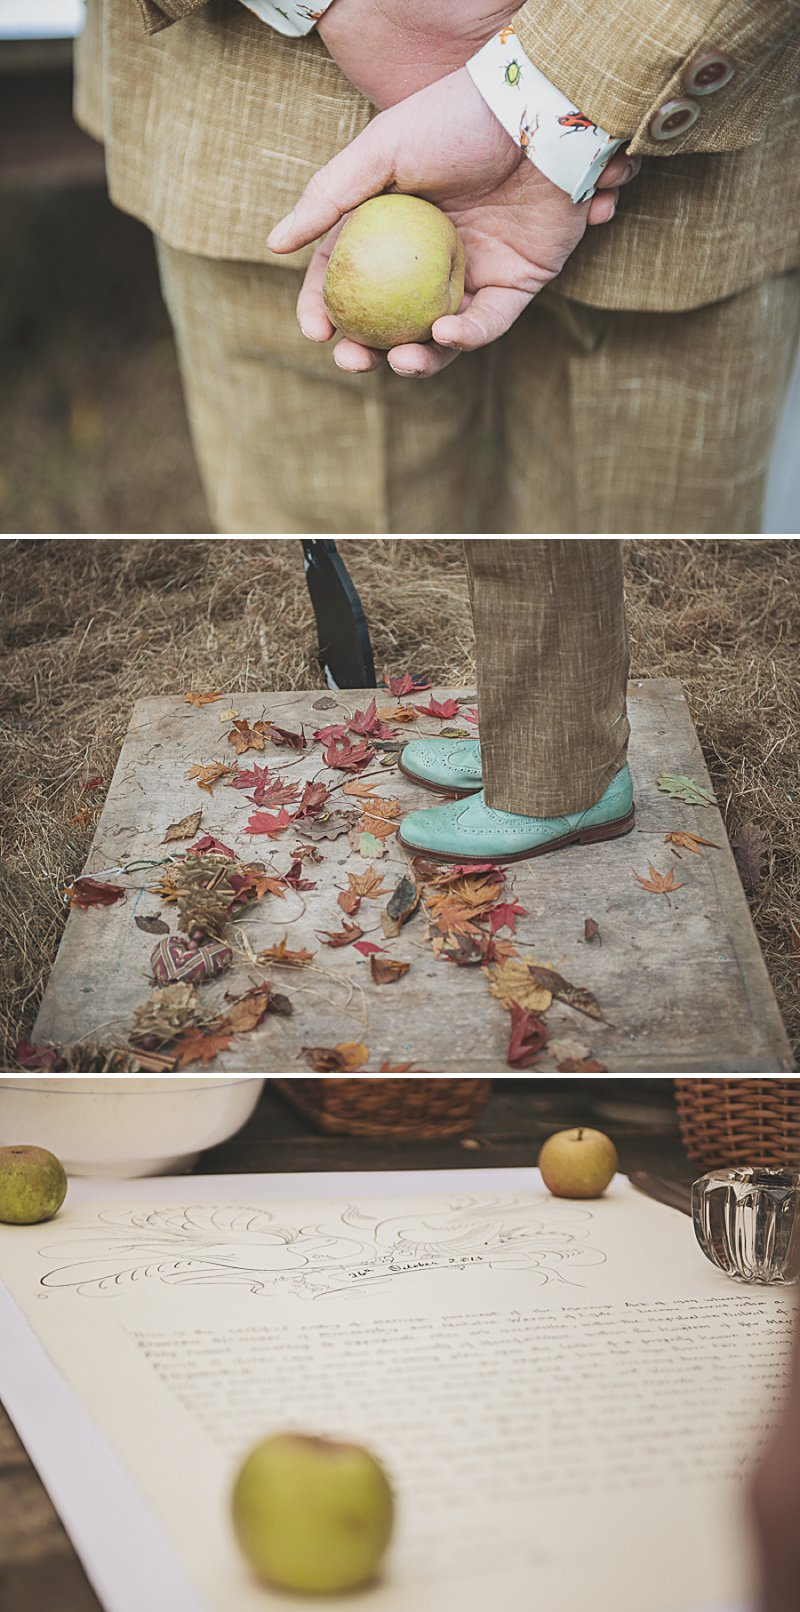 A DIY Wedding with homemade flowers, flamingo art, a polytunnel ceremony, apples, pumpkins, vintage dress and suit and vegetable bouquets.  Apple sharing ceremony at home with photography by Camilla Rosa_0008